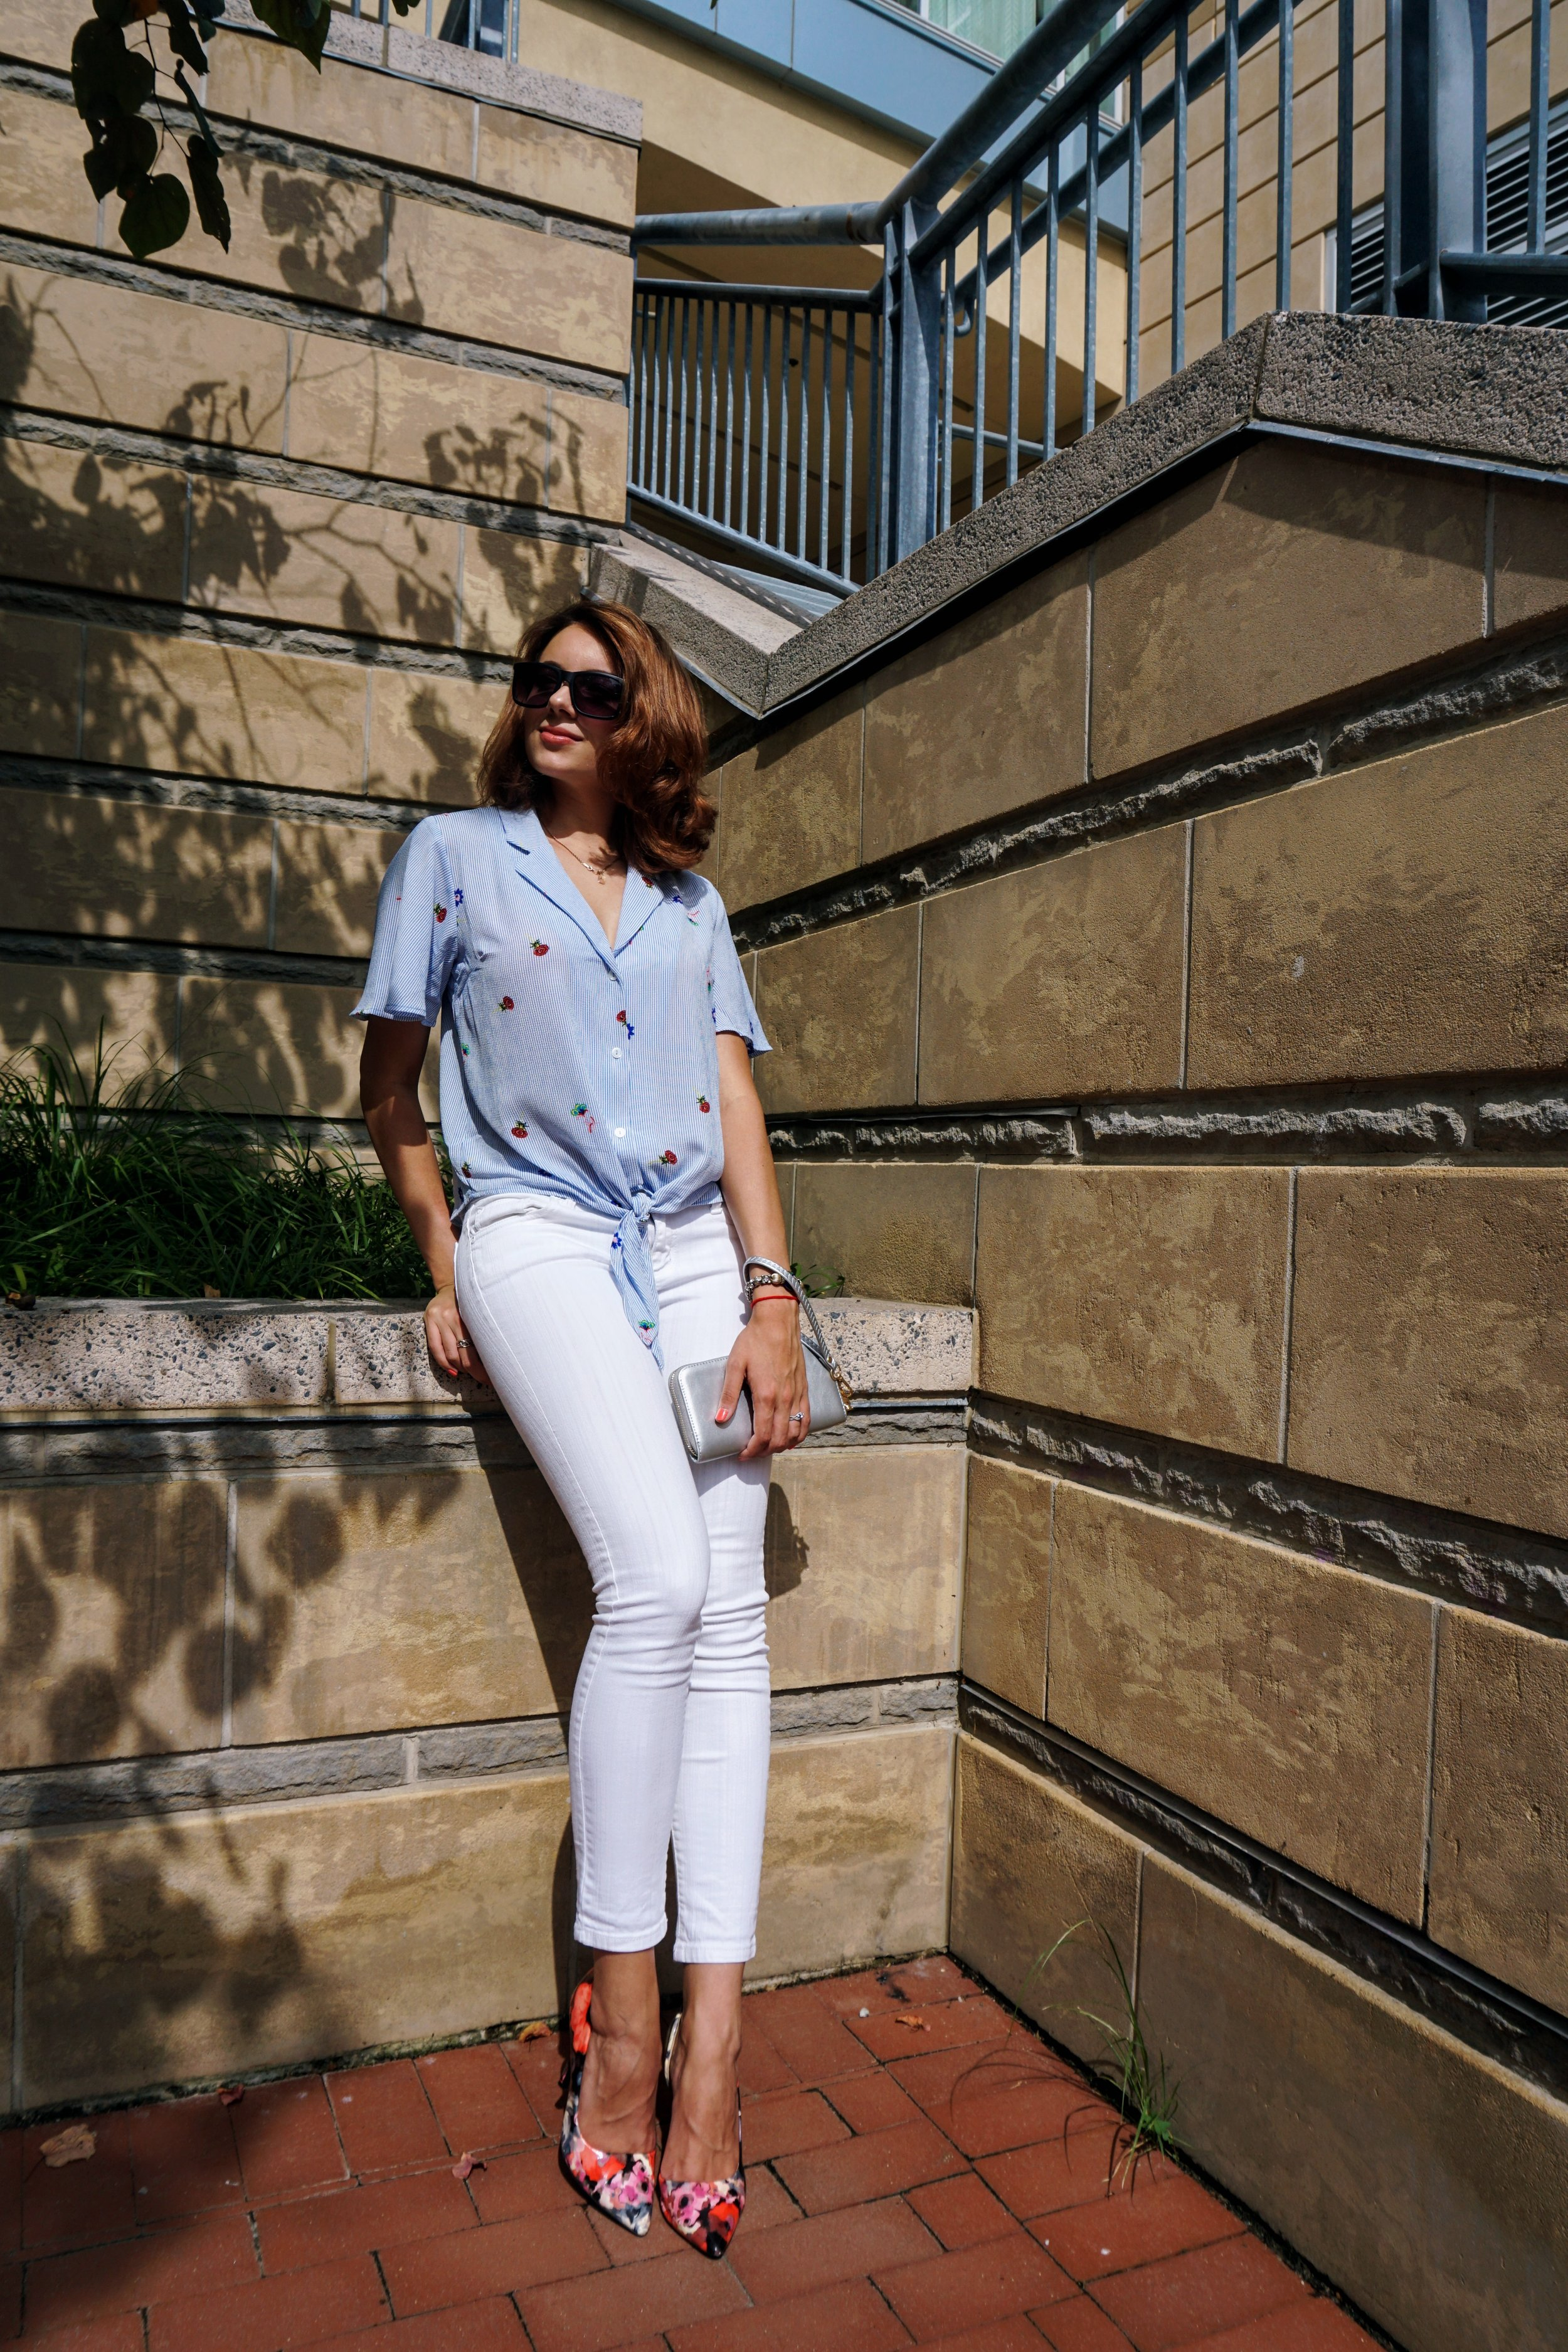 A fashion blogger posing in a summer outfit: blue blouse, white denim capris, colourful heels.